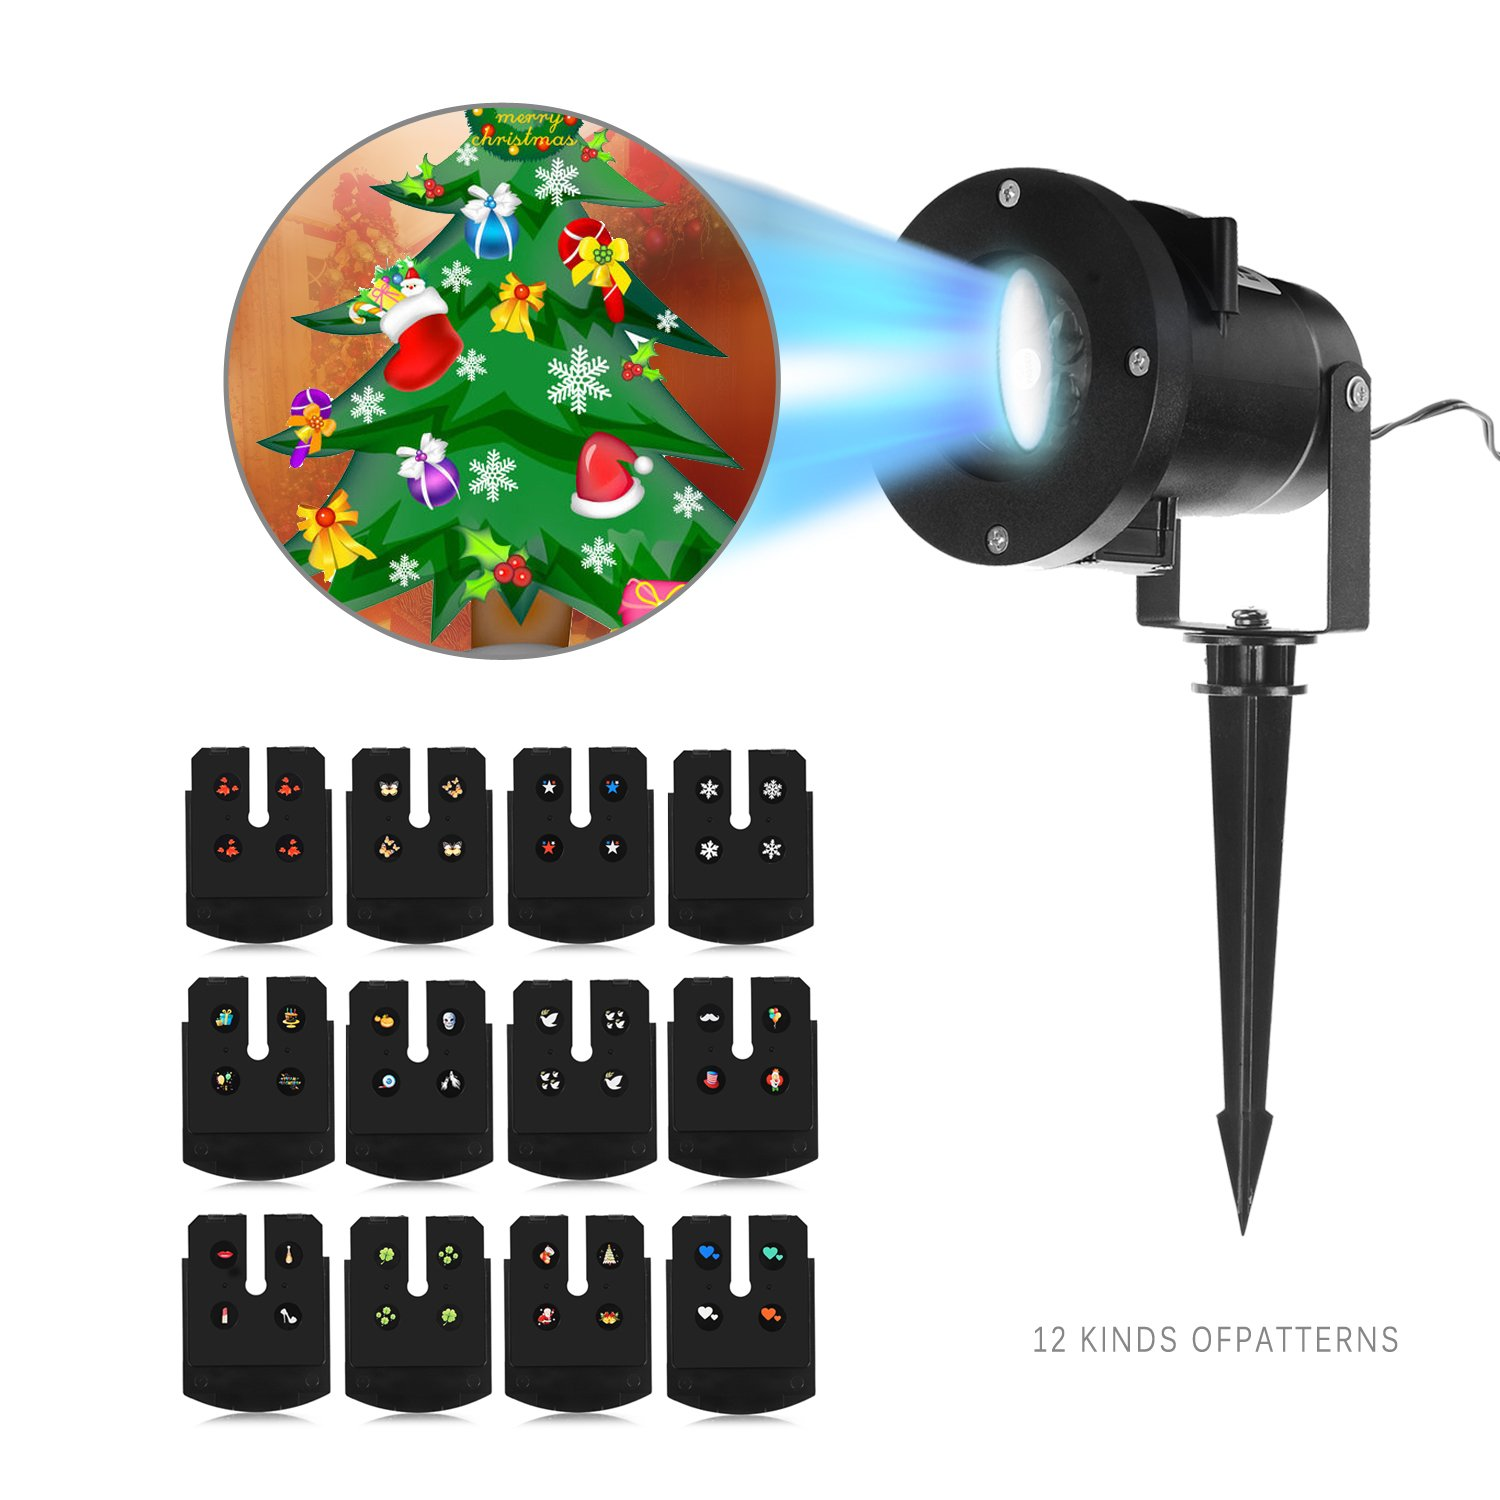 Holiday Projector Lights, Komost LED Projector Lights with 12 Switchable Patterns, Indoor and Outdoor for Holiday Lanscape Decoration